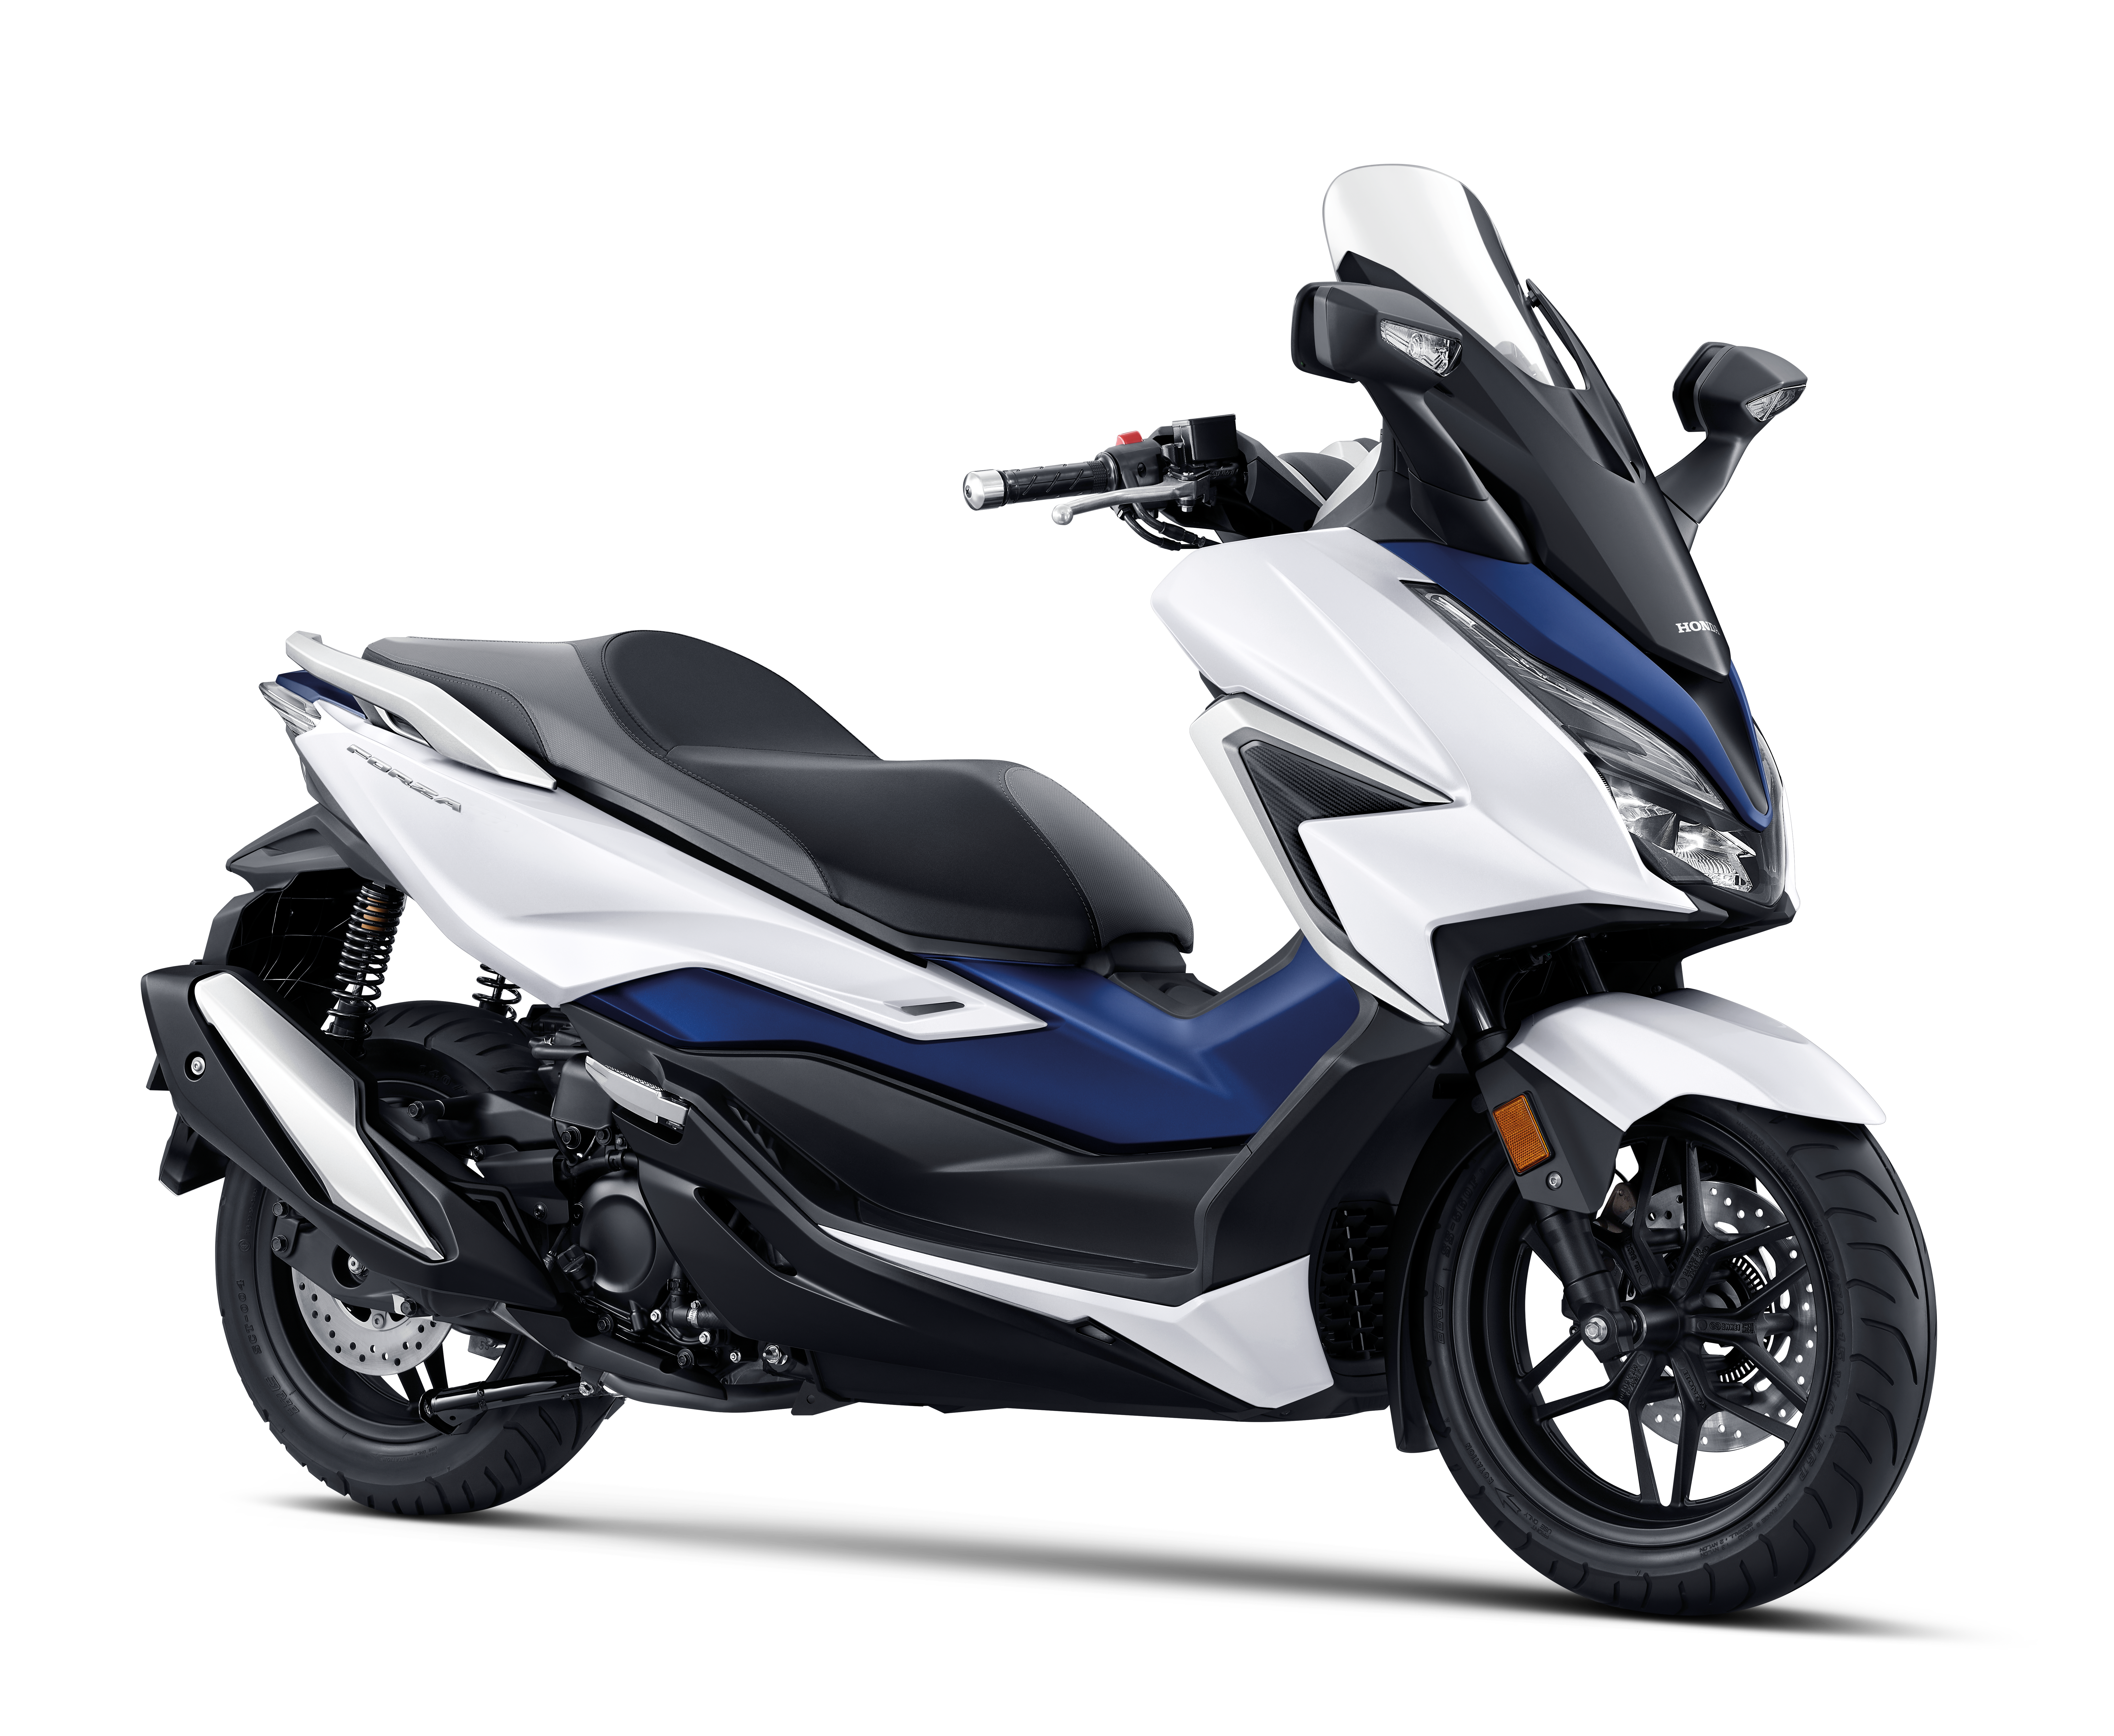 2021 Honda Forza 250 scooter in Malaysia – RM25,388 Image #1265504